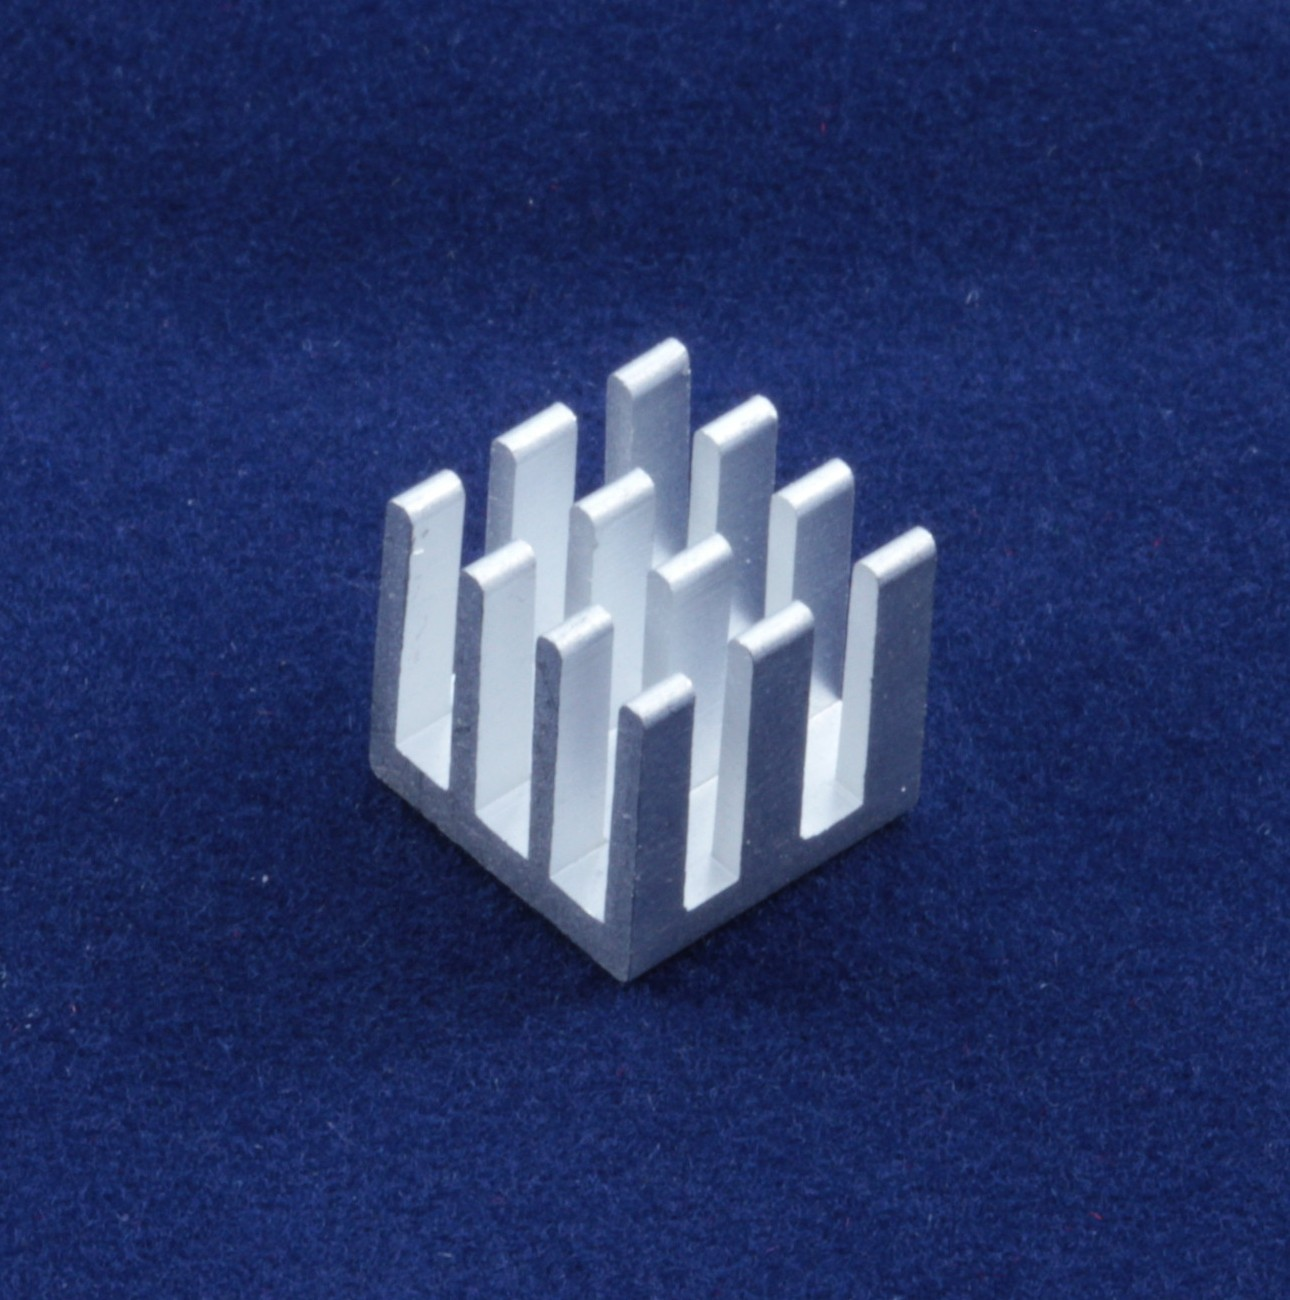 Heatsink for pololu / stepstick stepper drivers